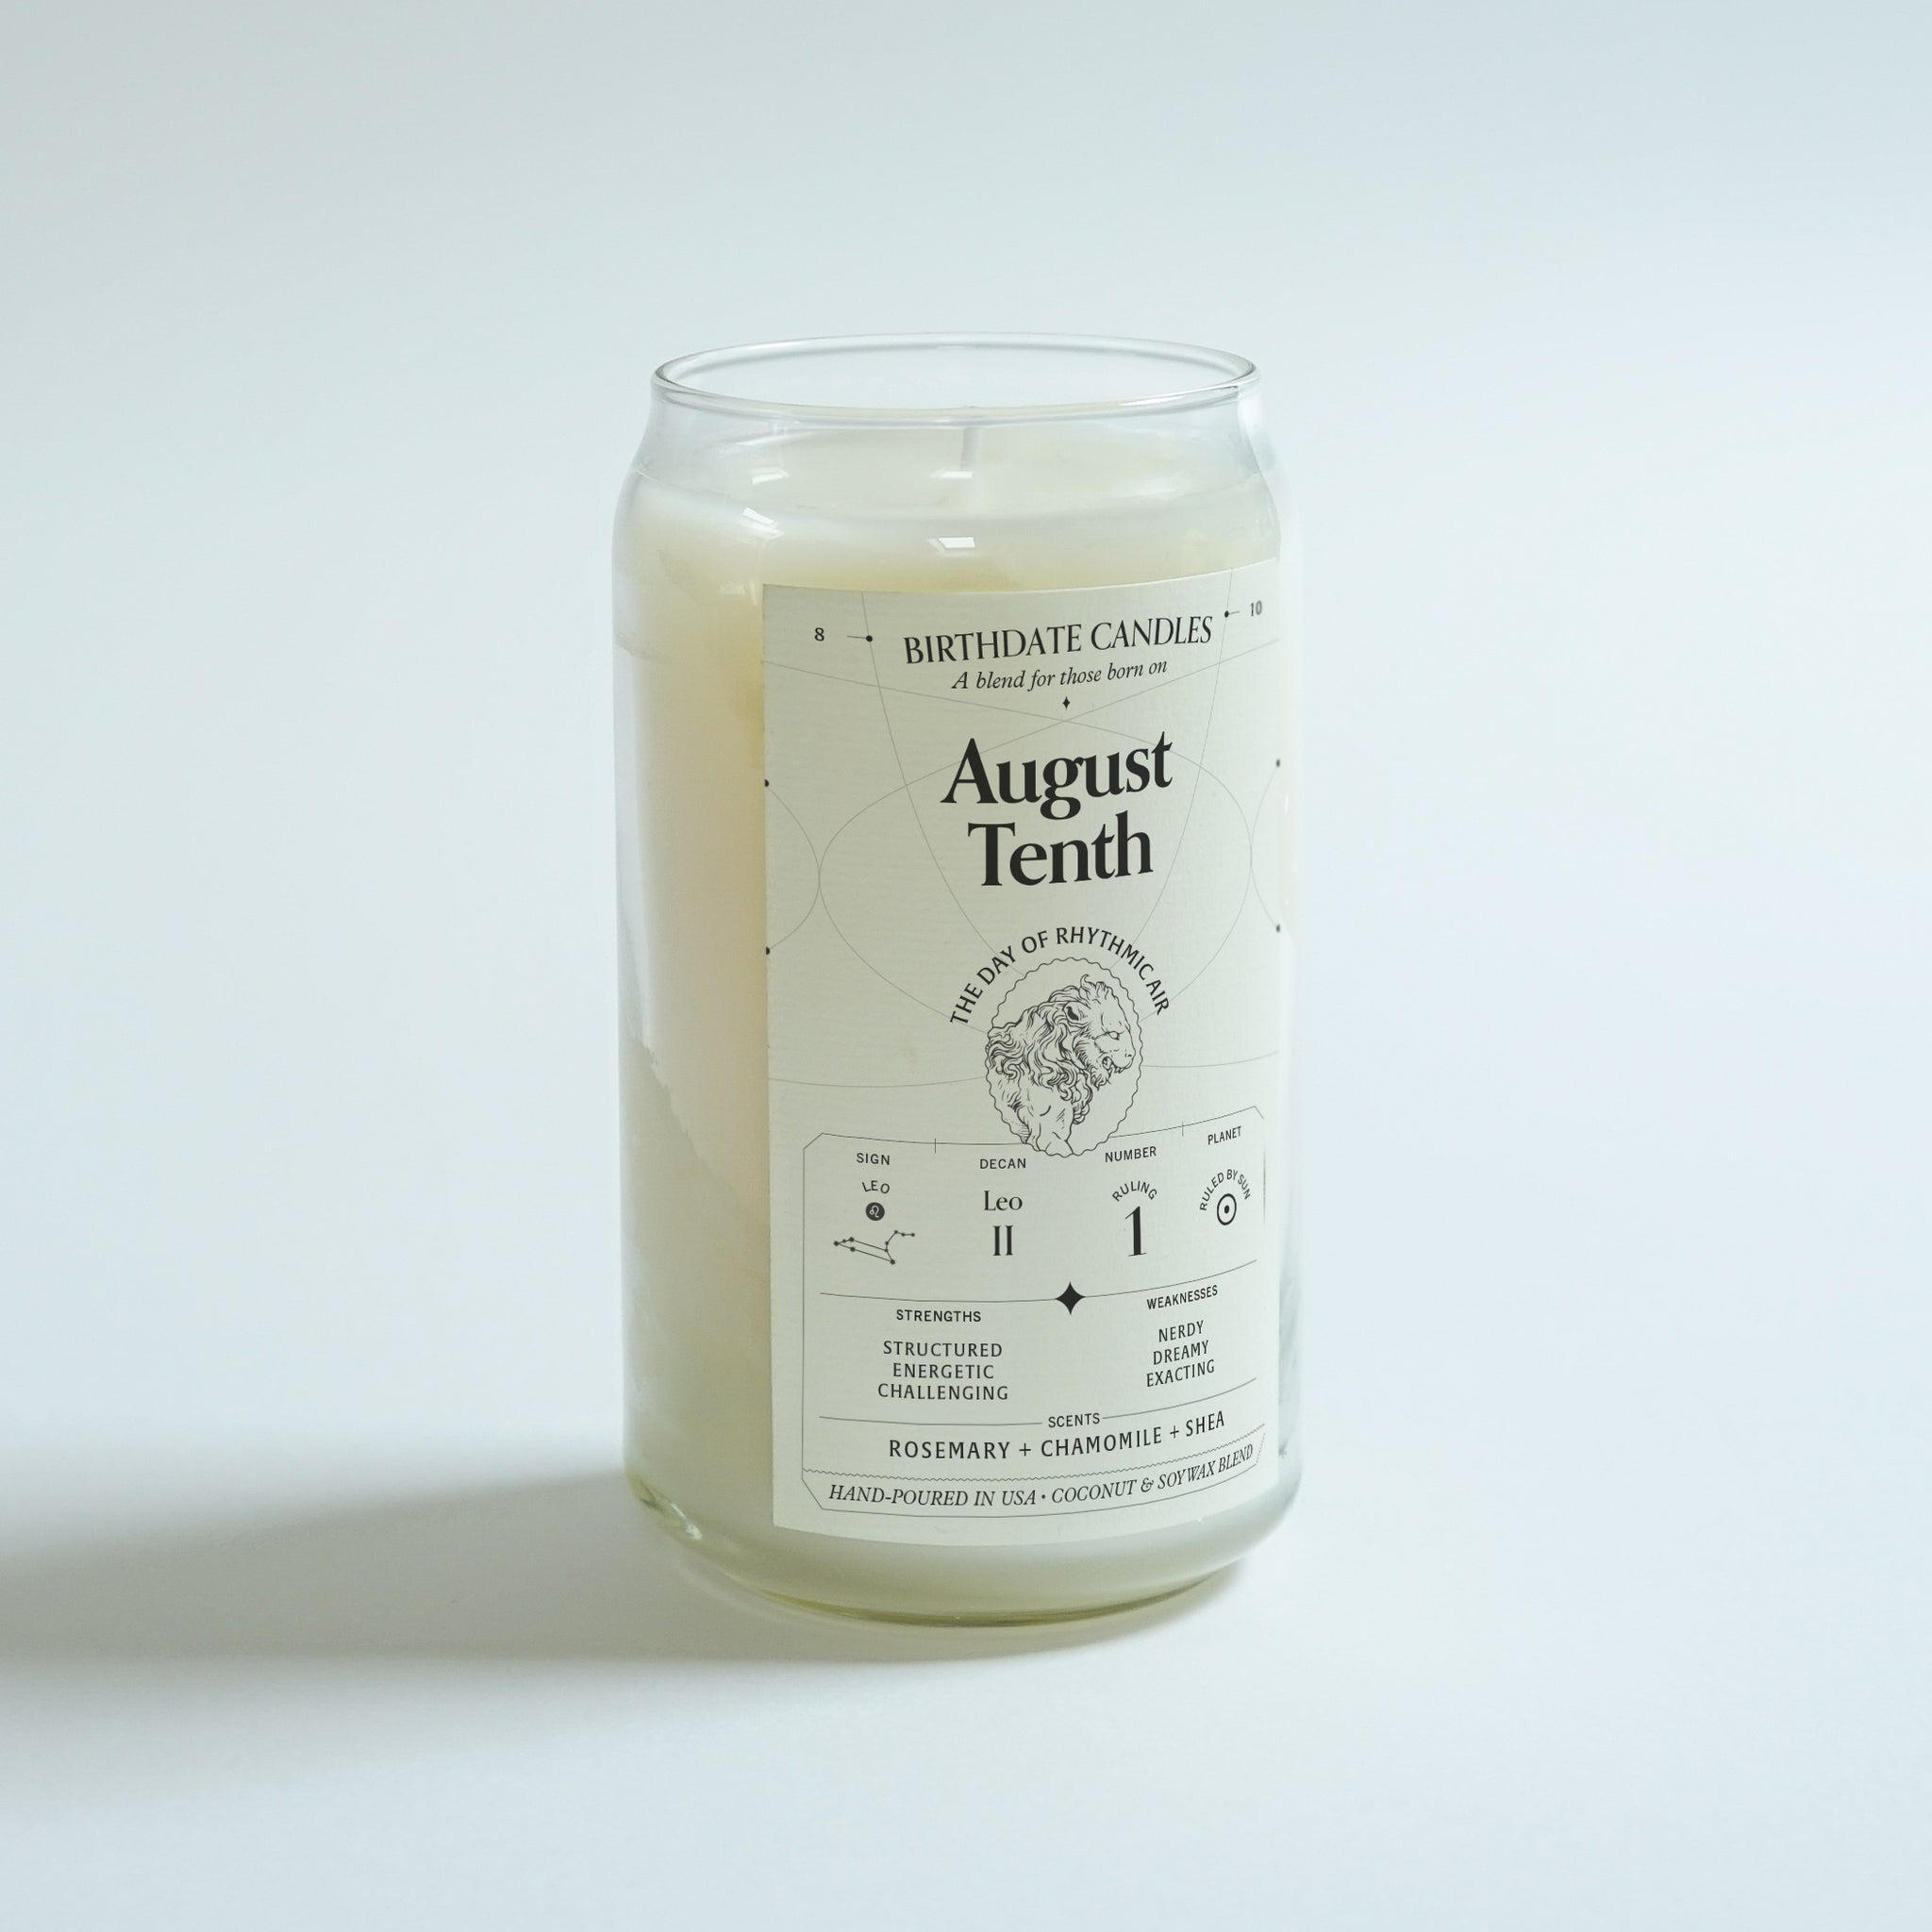 The August Tenth Birthday Candle